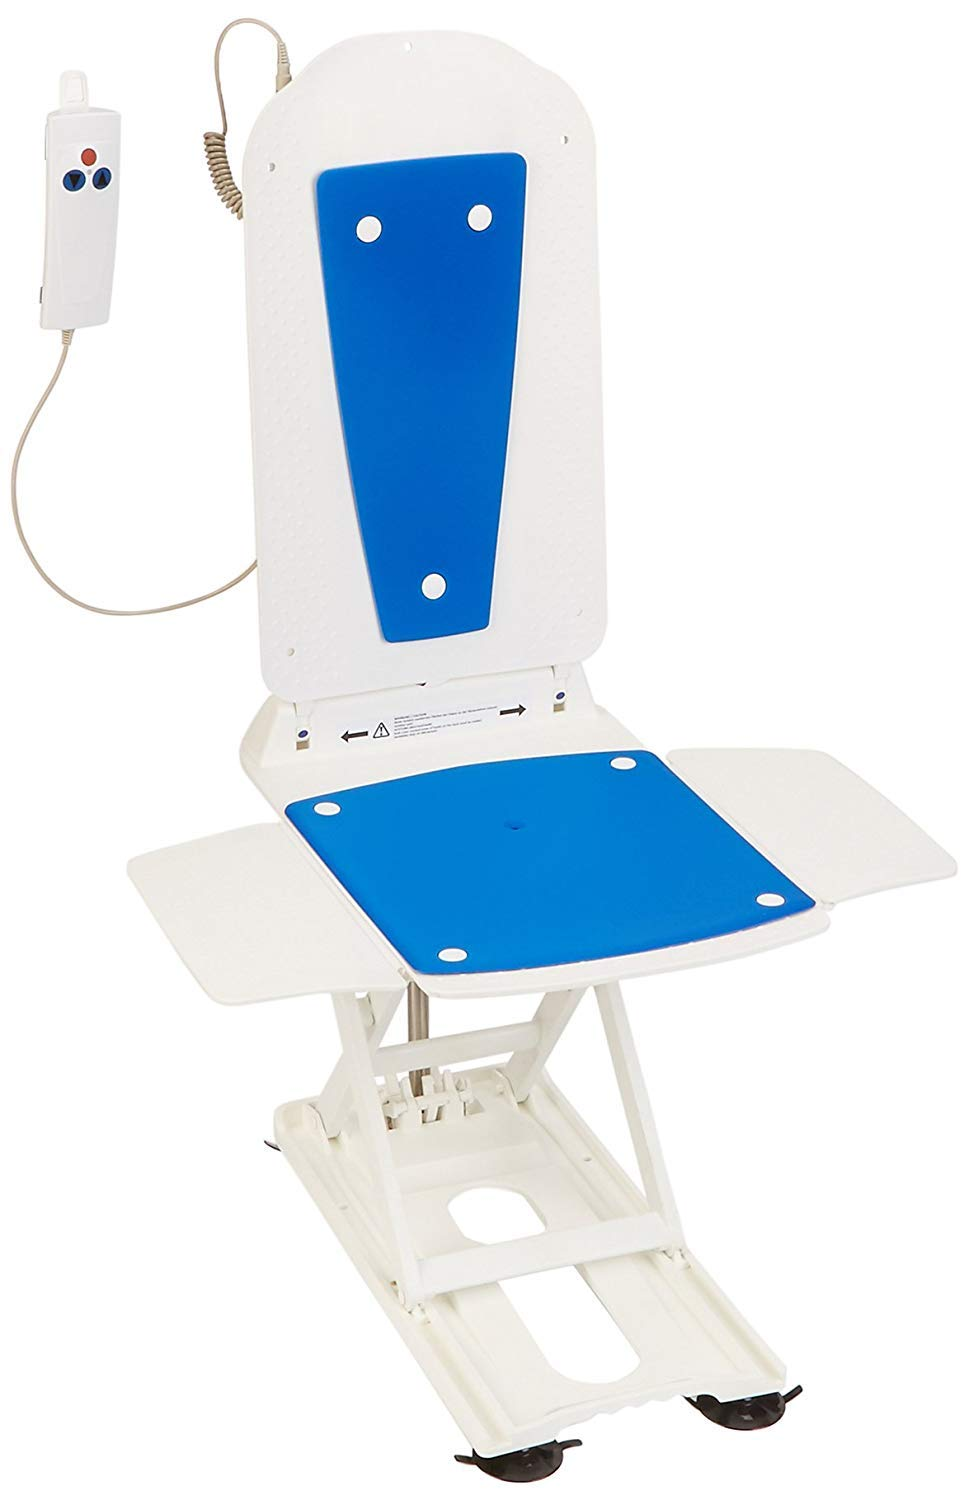 Image of Bathtub Lifts Bathmaster Sonaris2 Bath Lift, Bathroom Seat Lift, Optional Cover, Bath Tub Chair Lift for Elderly, Handicapped, & Disabled, Automatic Bathroom & Shower Chair, Bath Recliner Seat, Elevation Seat